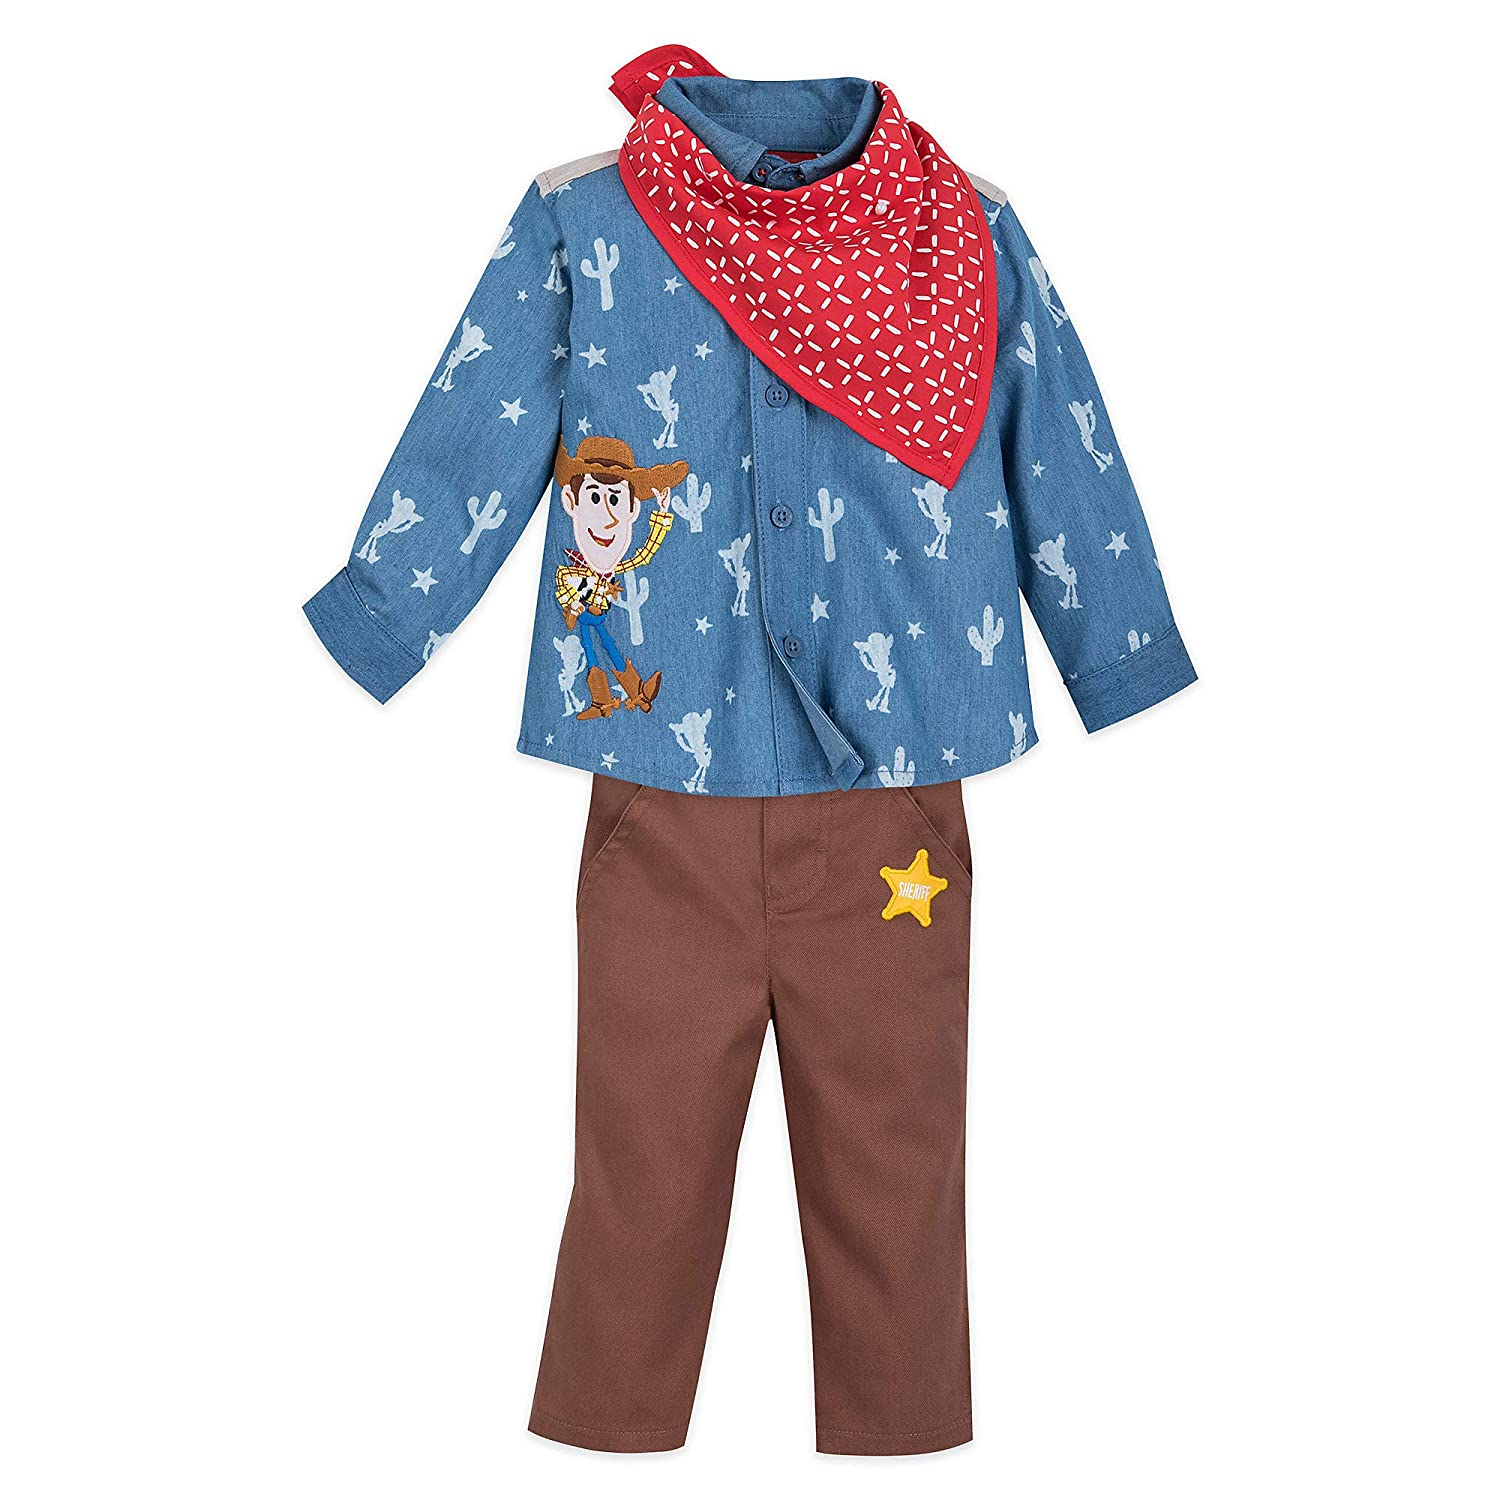 Disney Woody Shirt and Pants Set for Baby Size 12-18 MO Multi